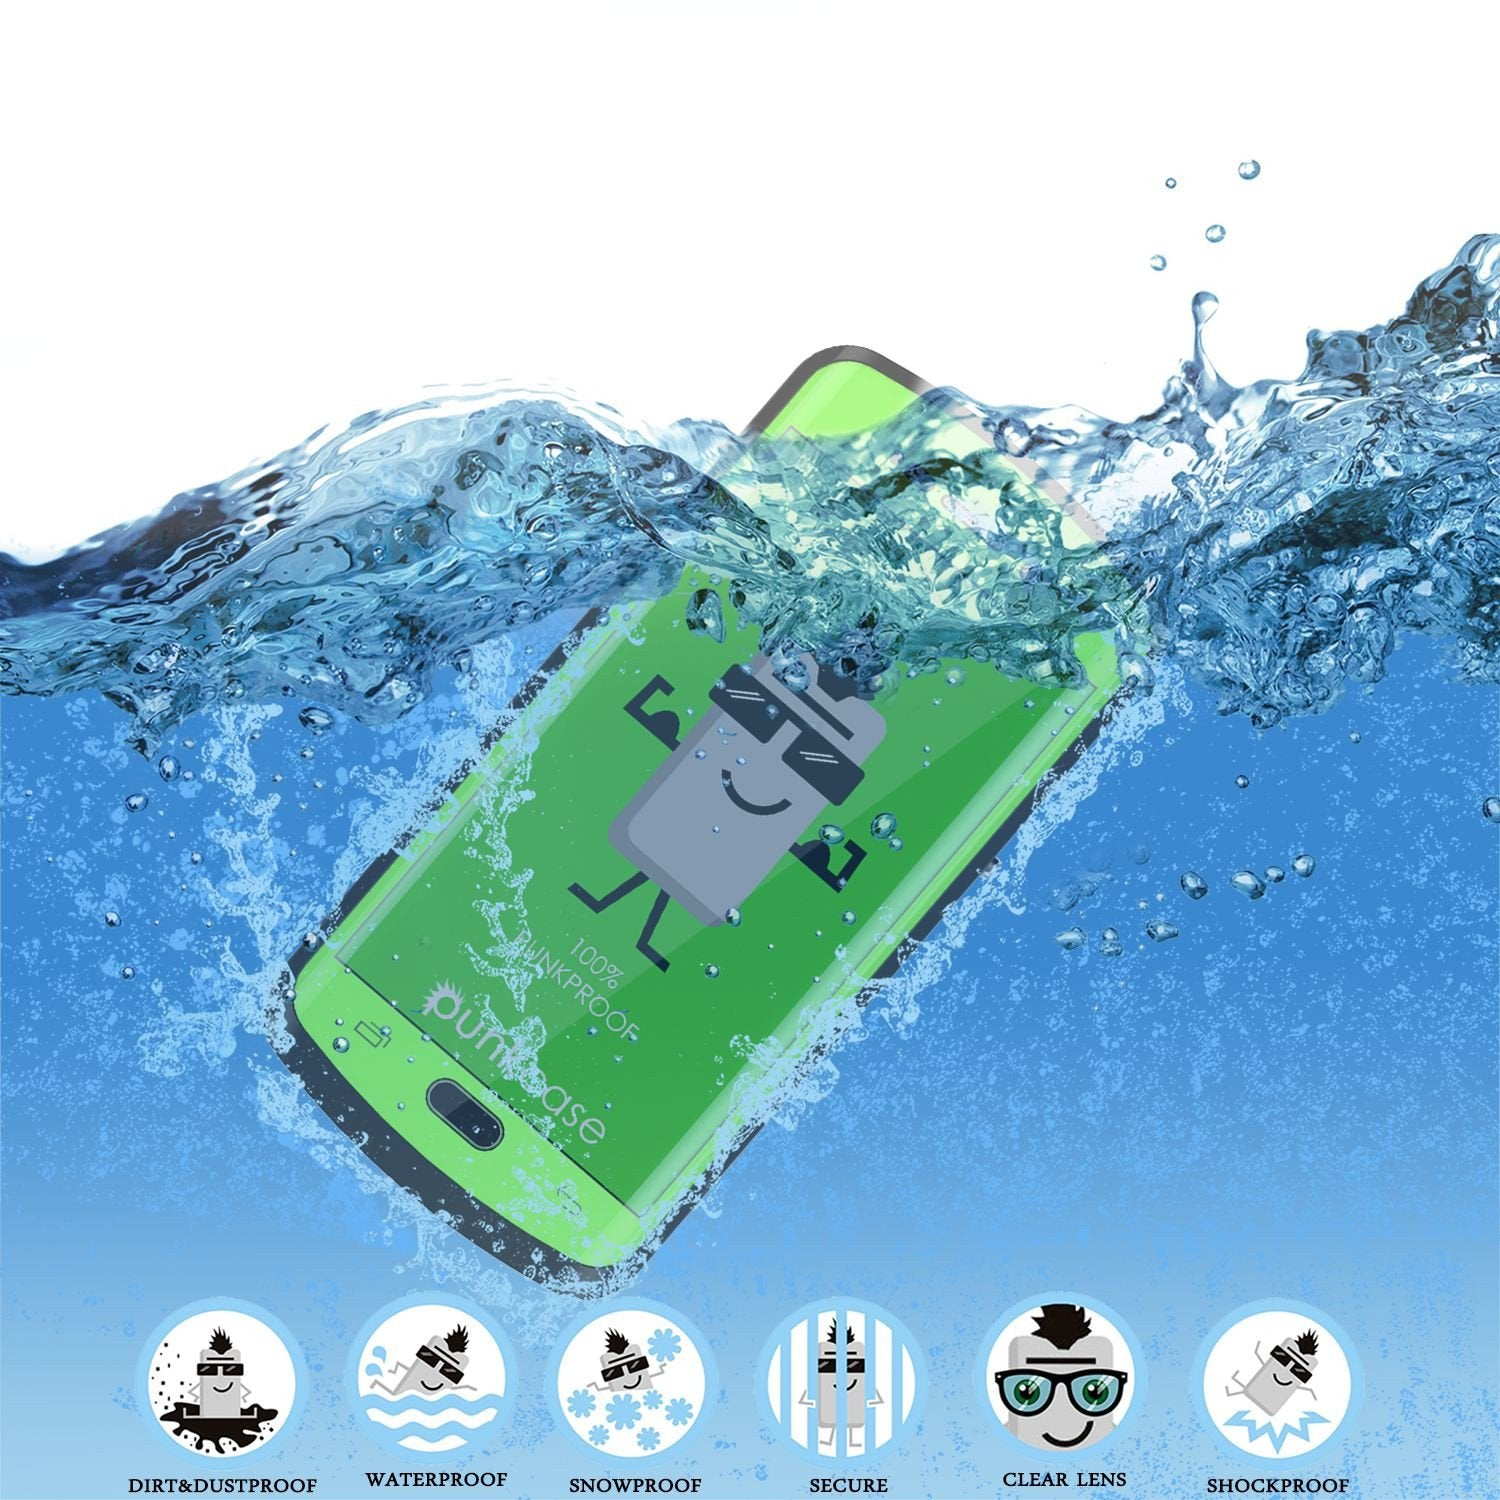 Galaxy s6 EDGE Plus Waterproof Case, Punkcase StudStar Light Green Series | Lifetime Warranty